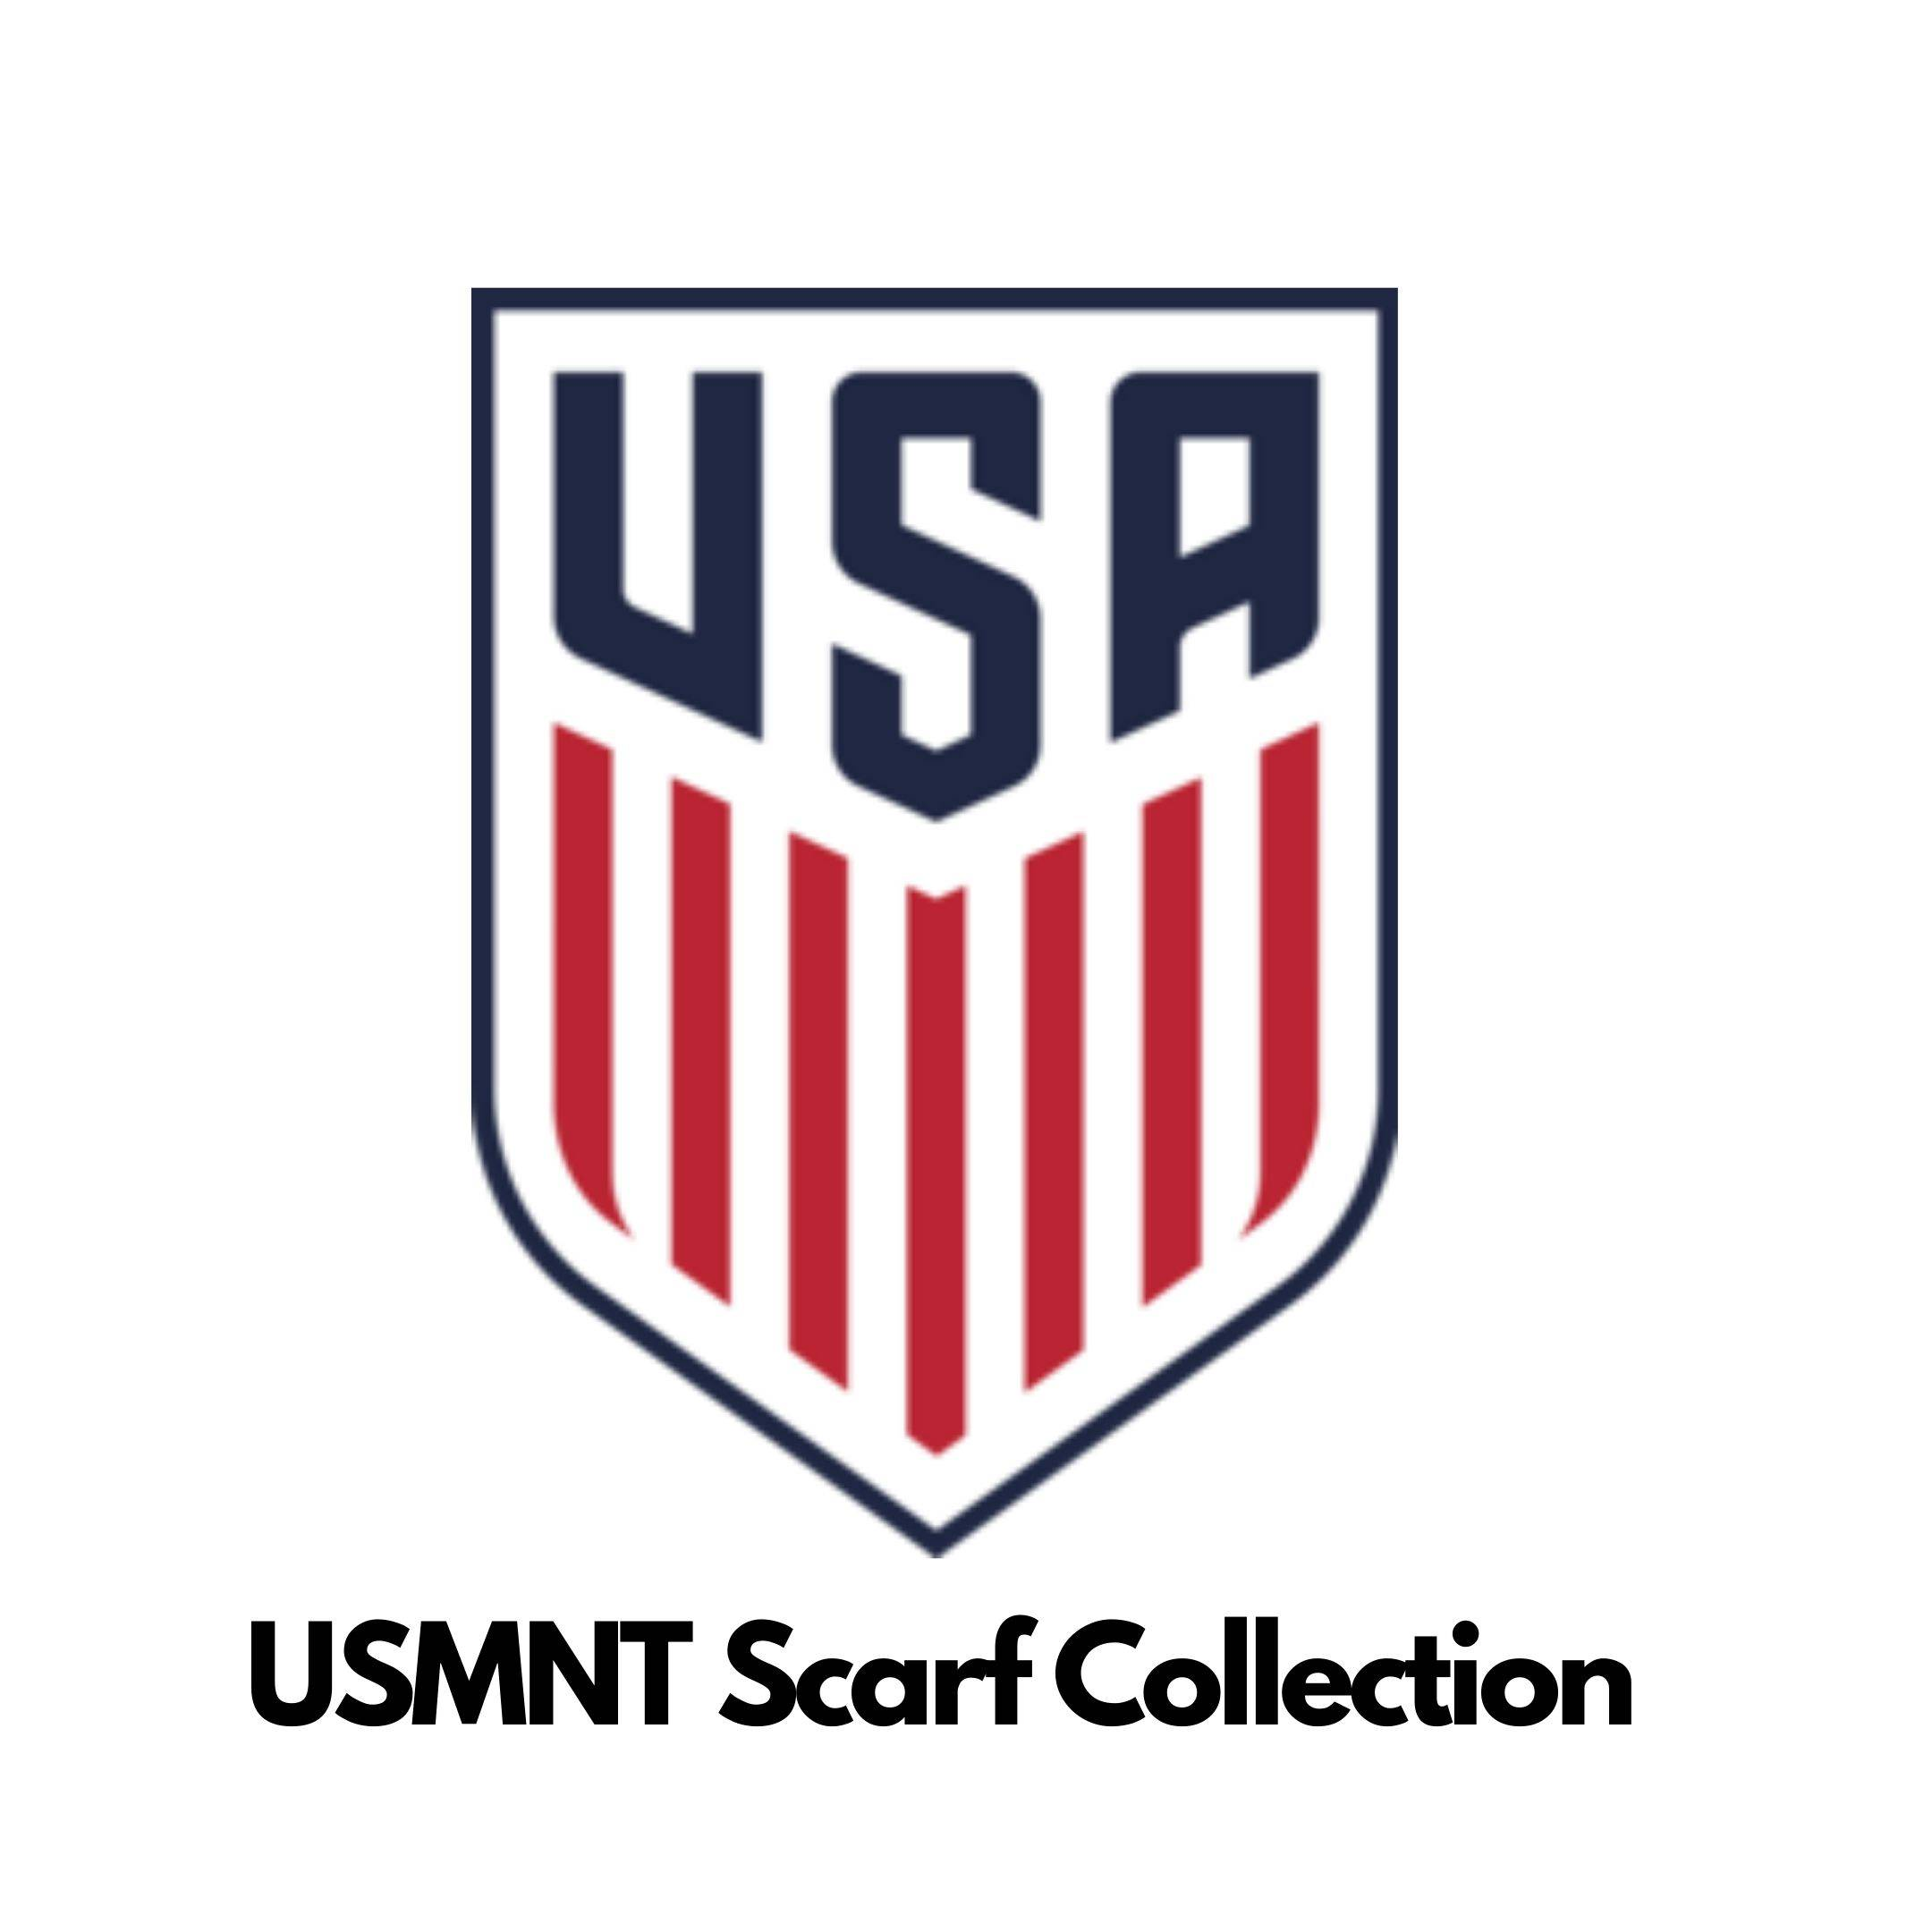 USMNT scarf collection